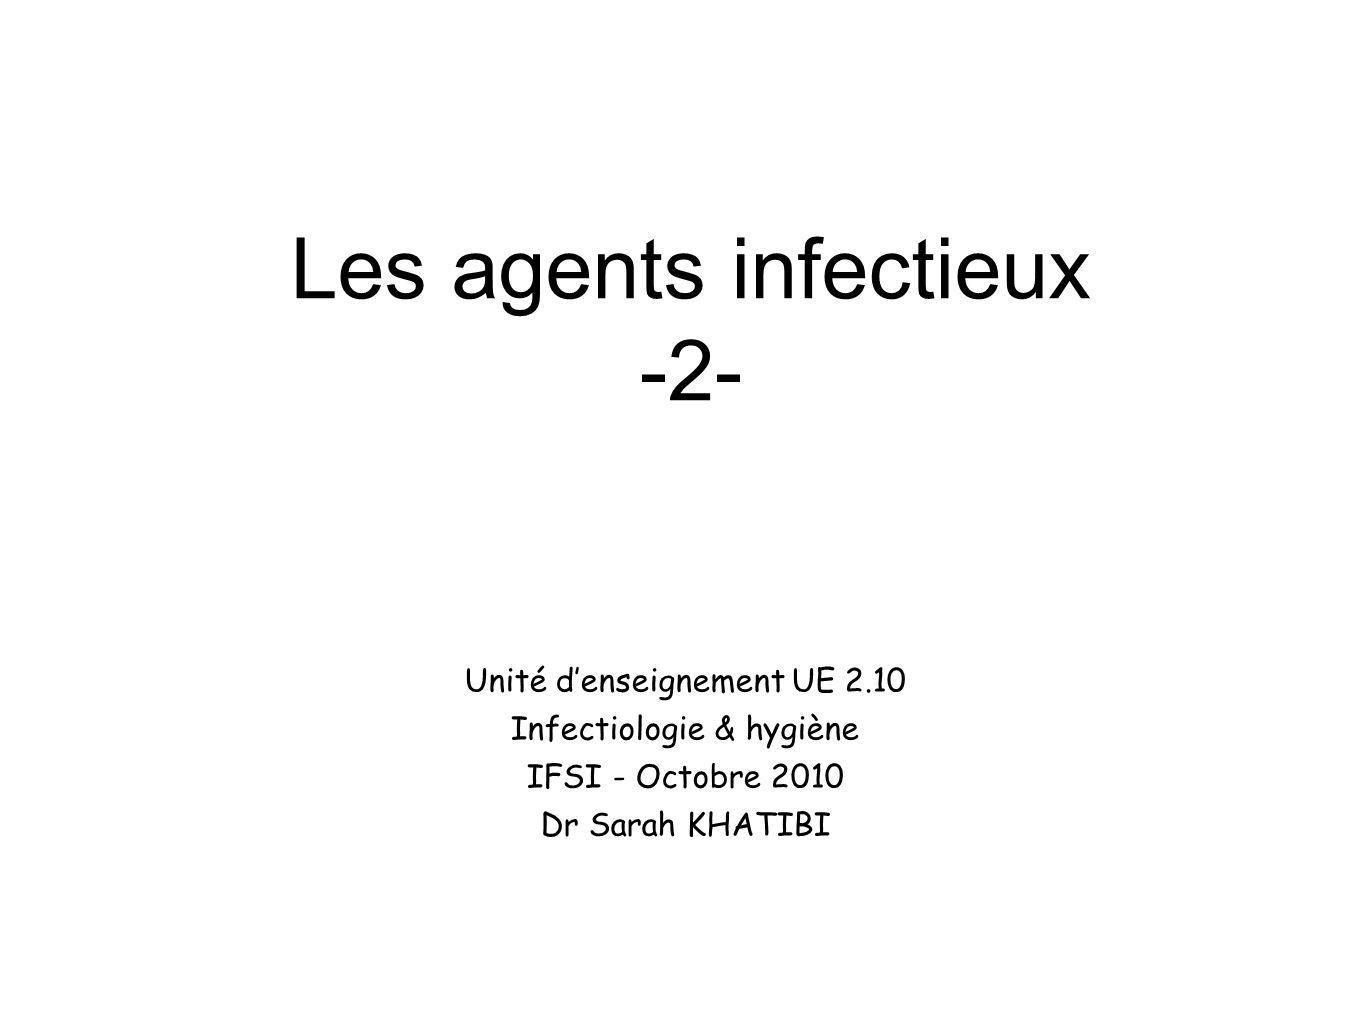 Les agents infectieux -2-